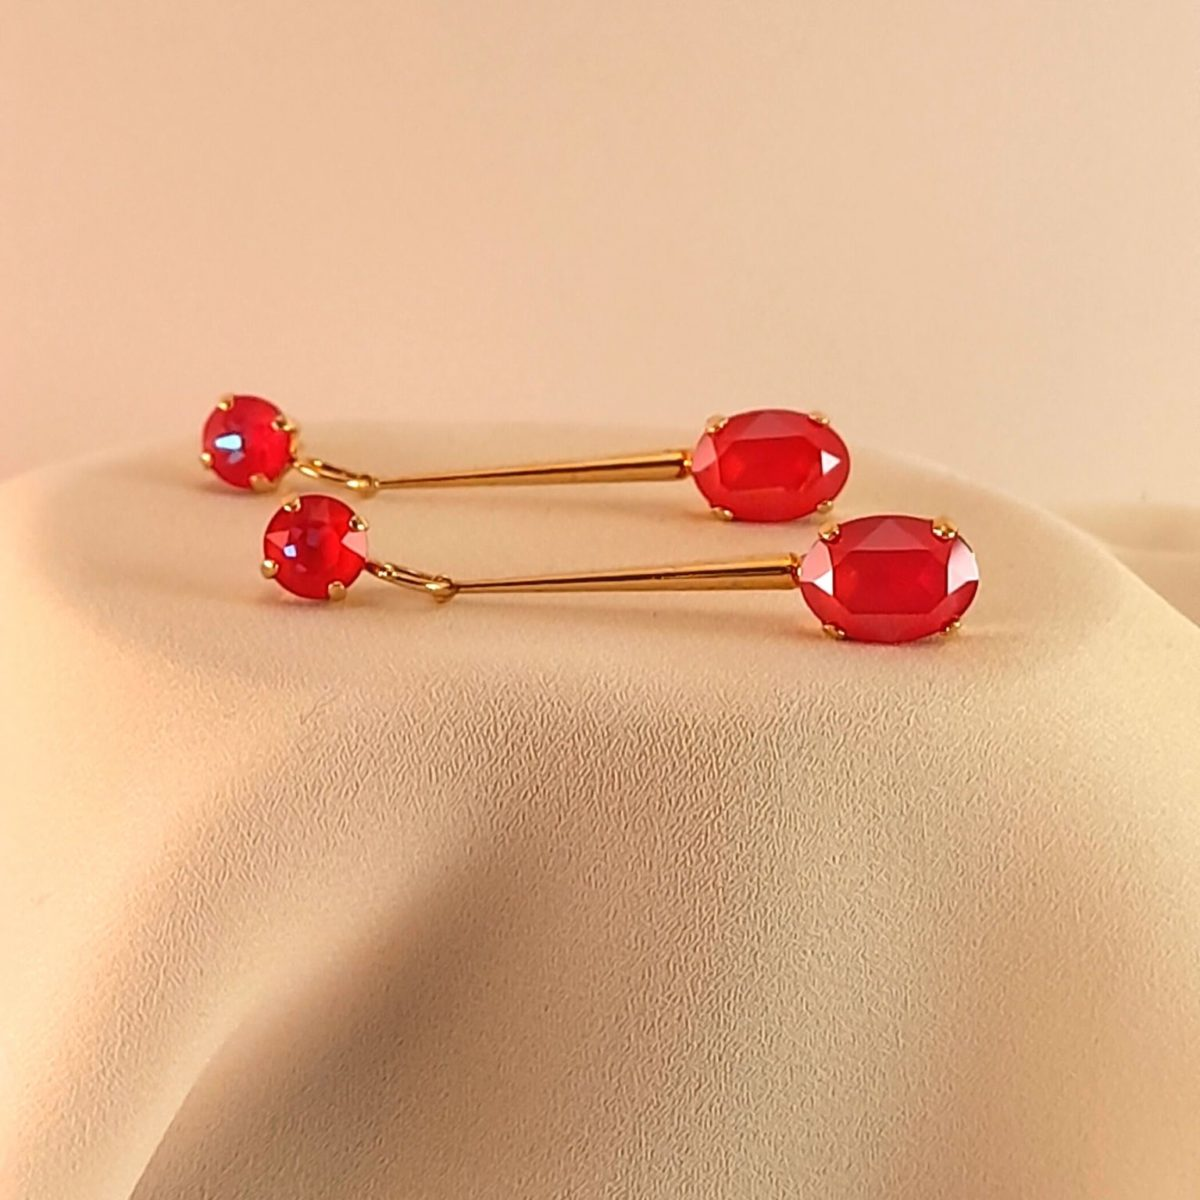 Long Earrings With 2 Red Colored Stones